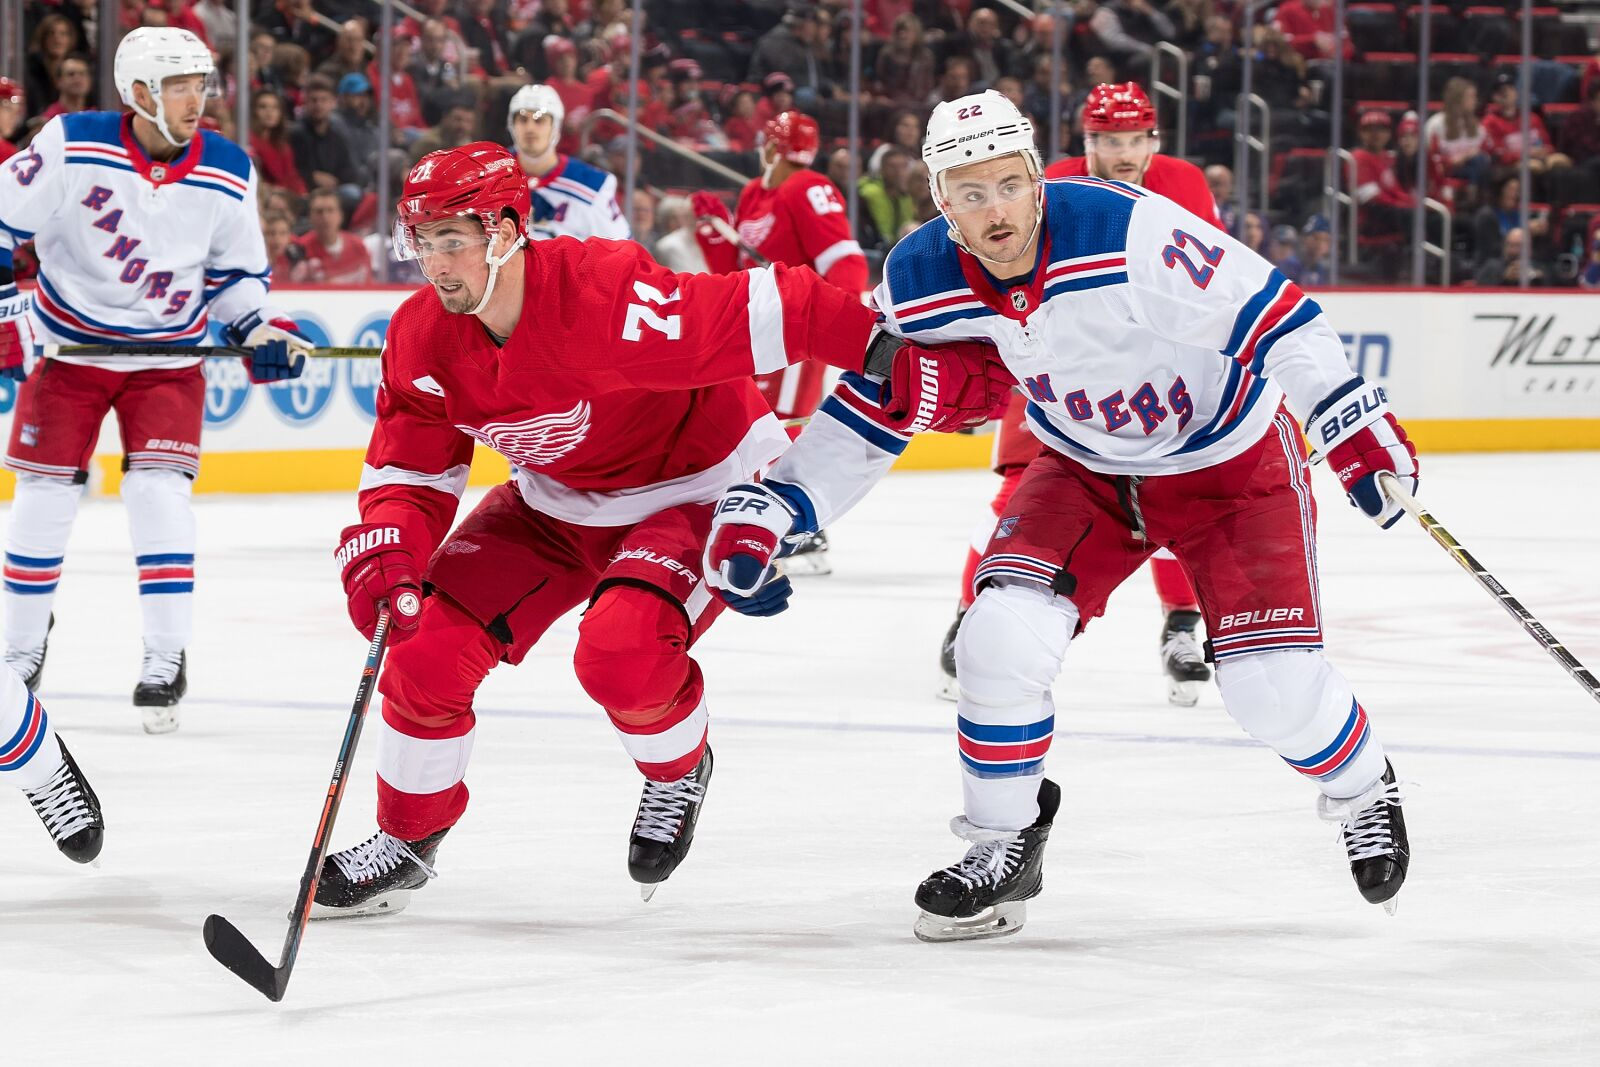 The Detroit Red Wings Storm back after the Penalty Kill let them down